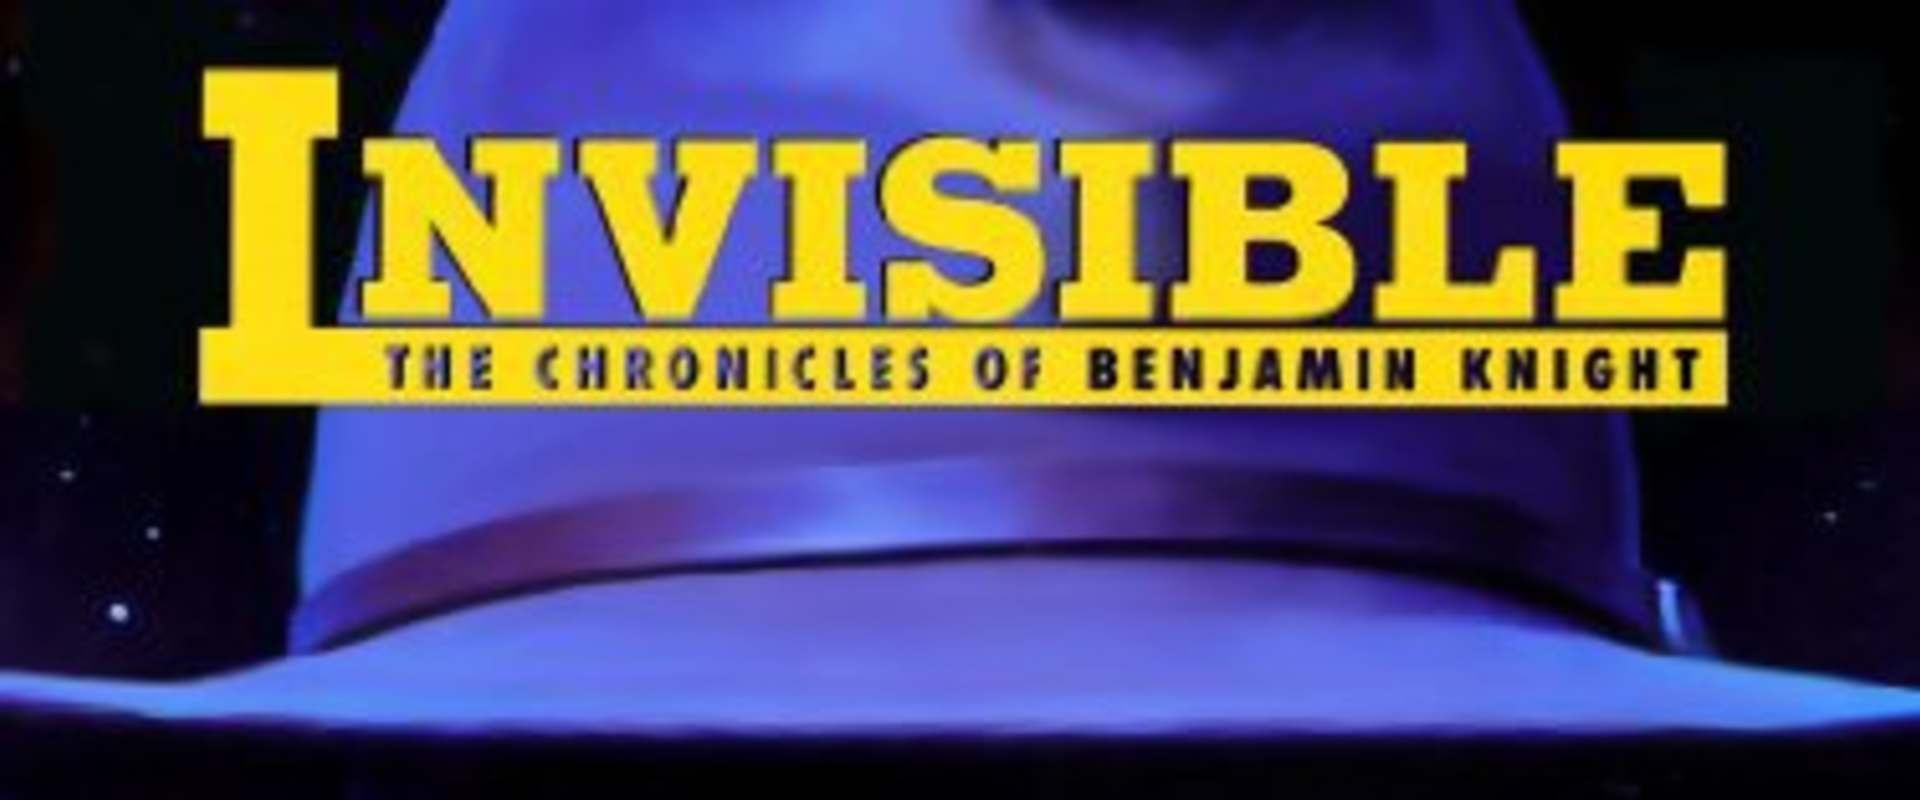 Invisible: The Chronicles of Benjamin Knight background 1